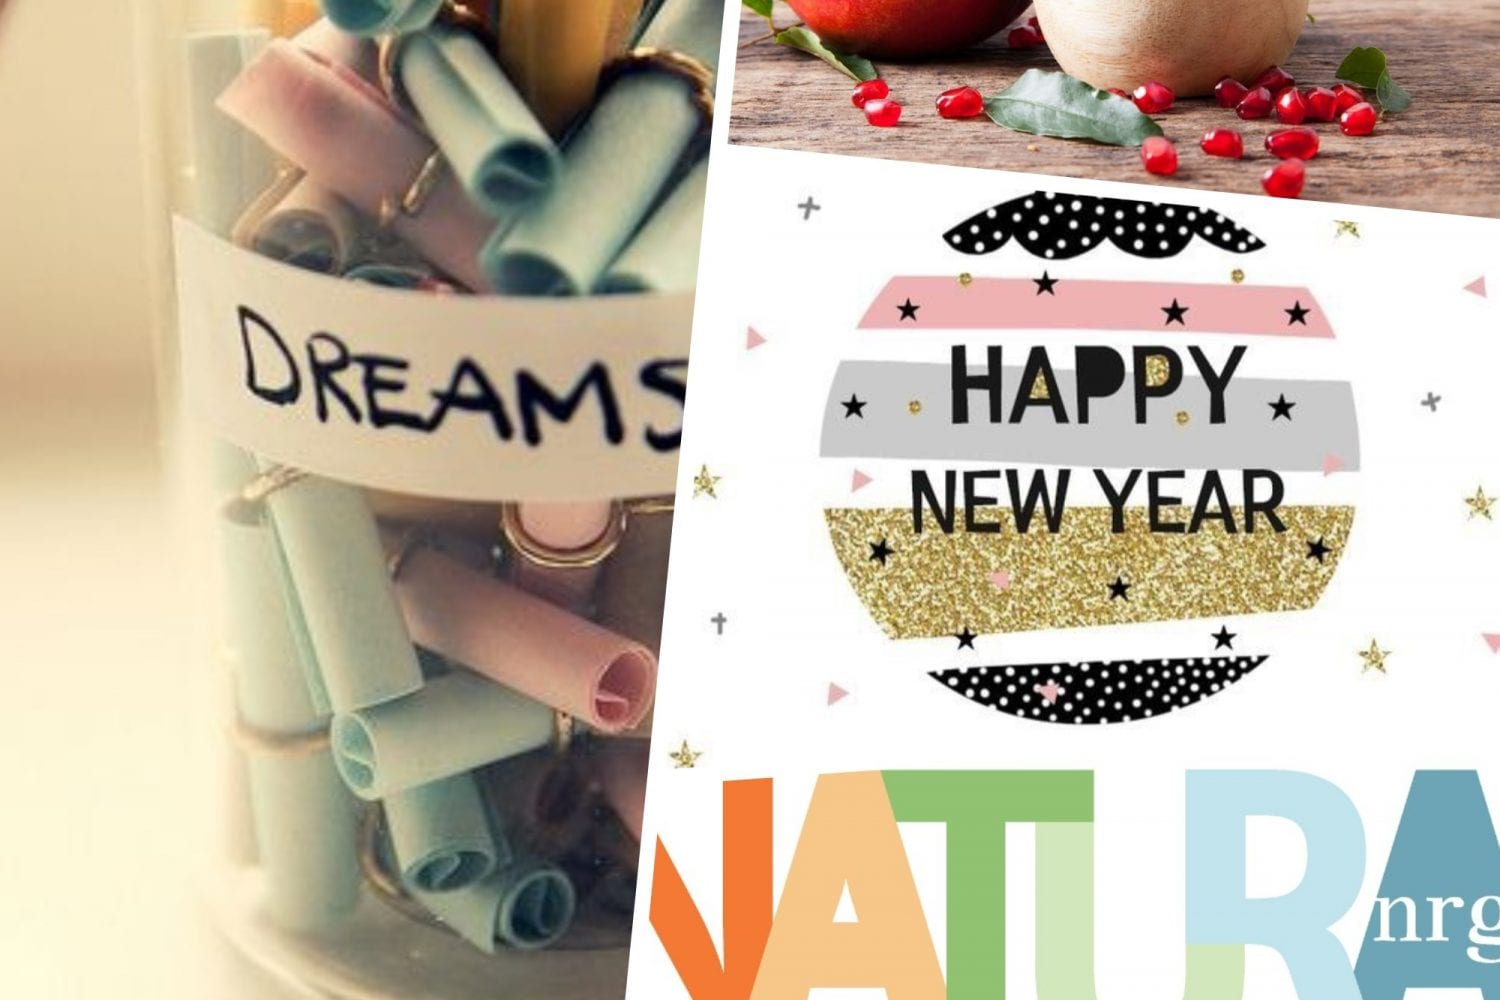 Happy-New-Year-Naturanrg